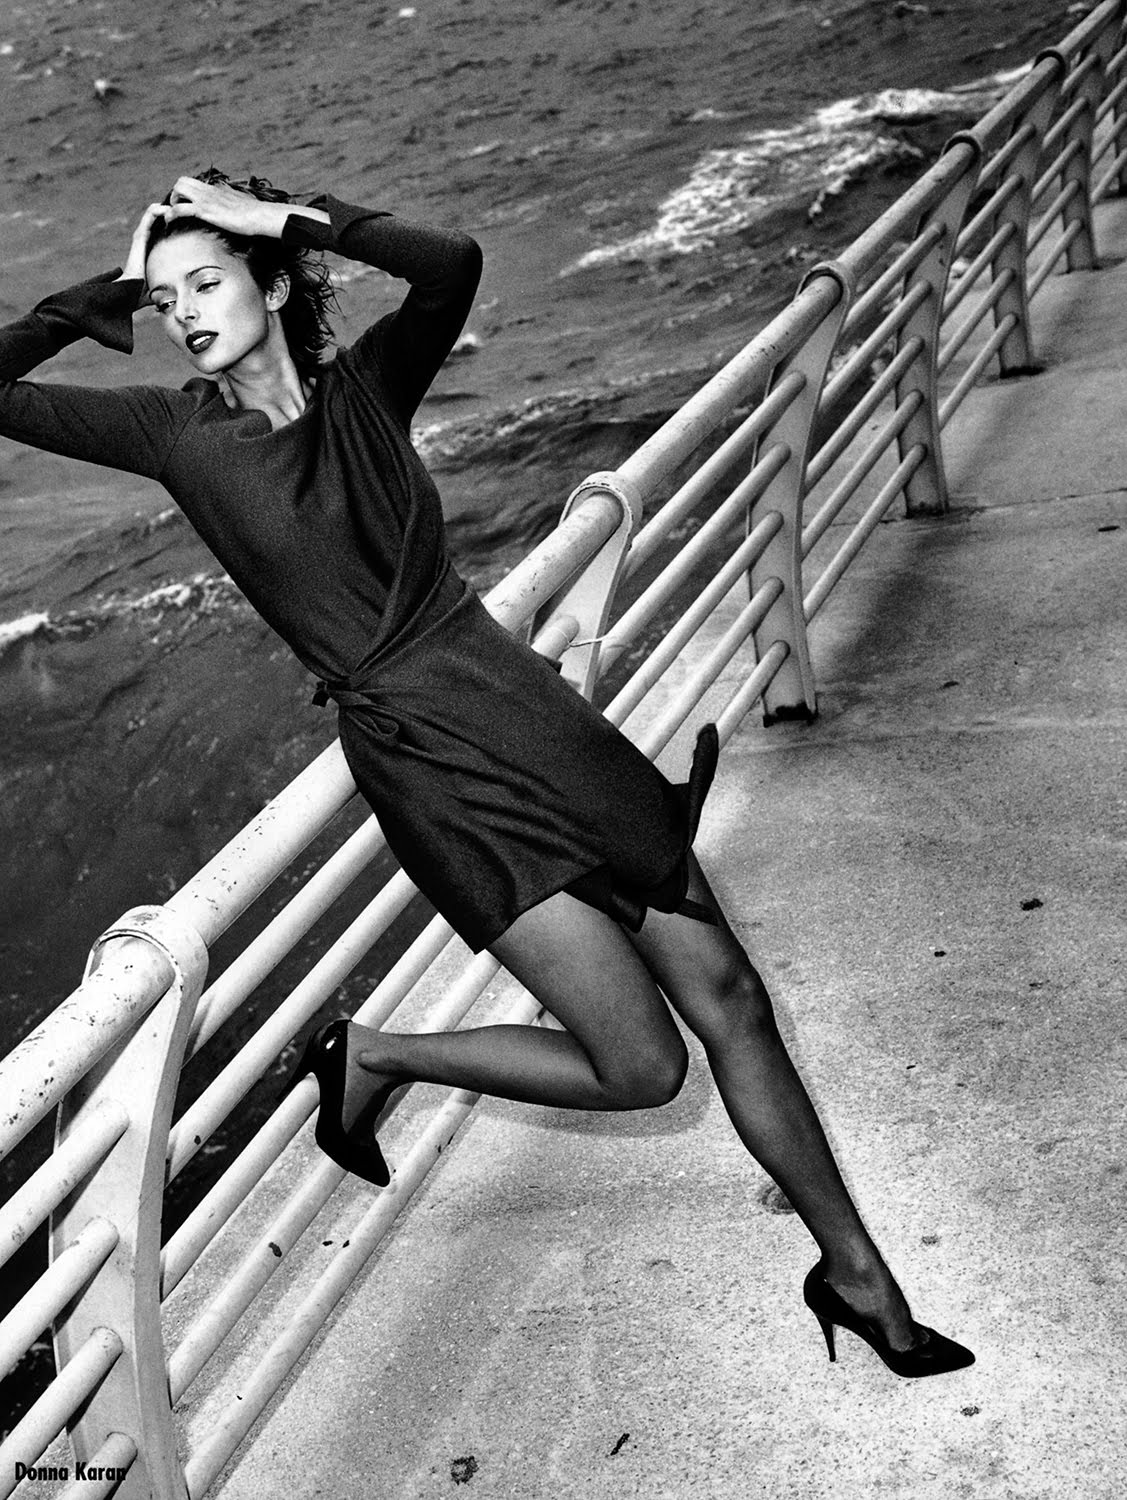 helmut newton Nobody has made quite the lasting impression on fashion imagery as helmut newton hired by french vogue in the 1950s before being propelled to fame in the 1970s.